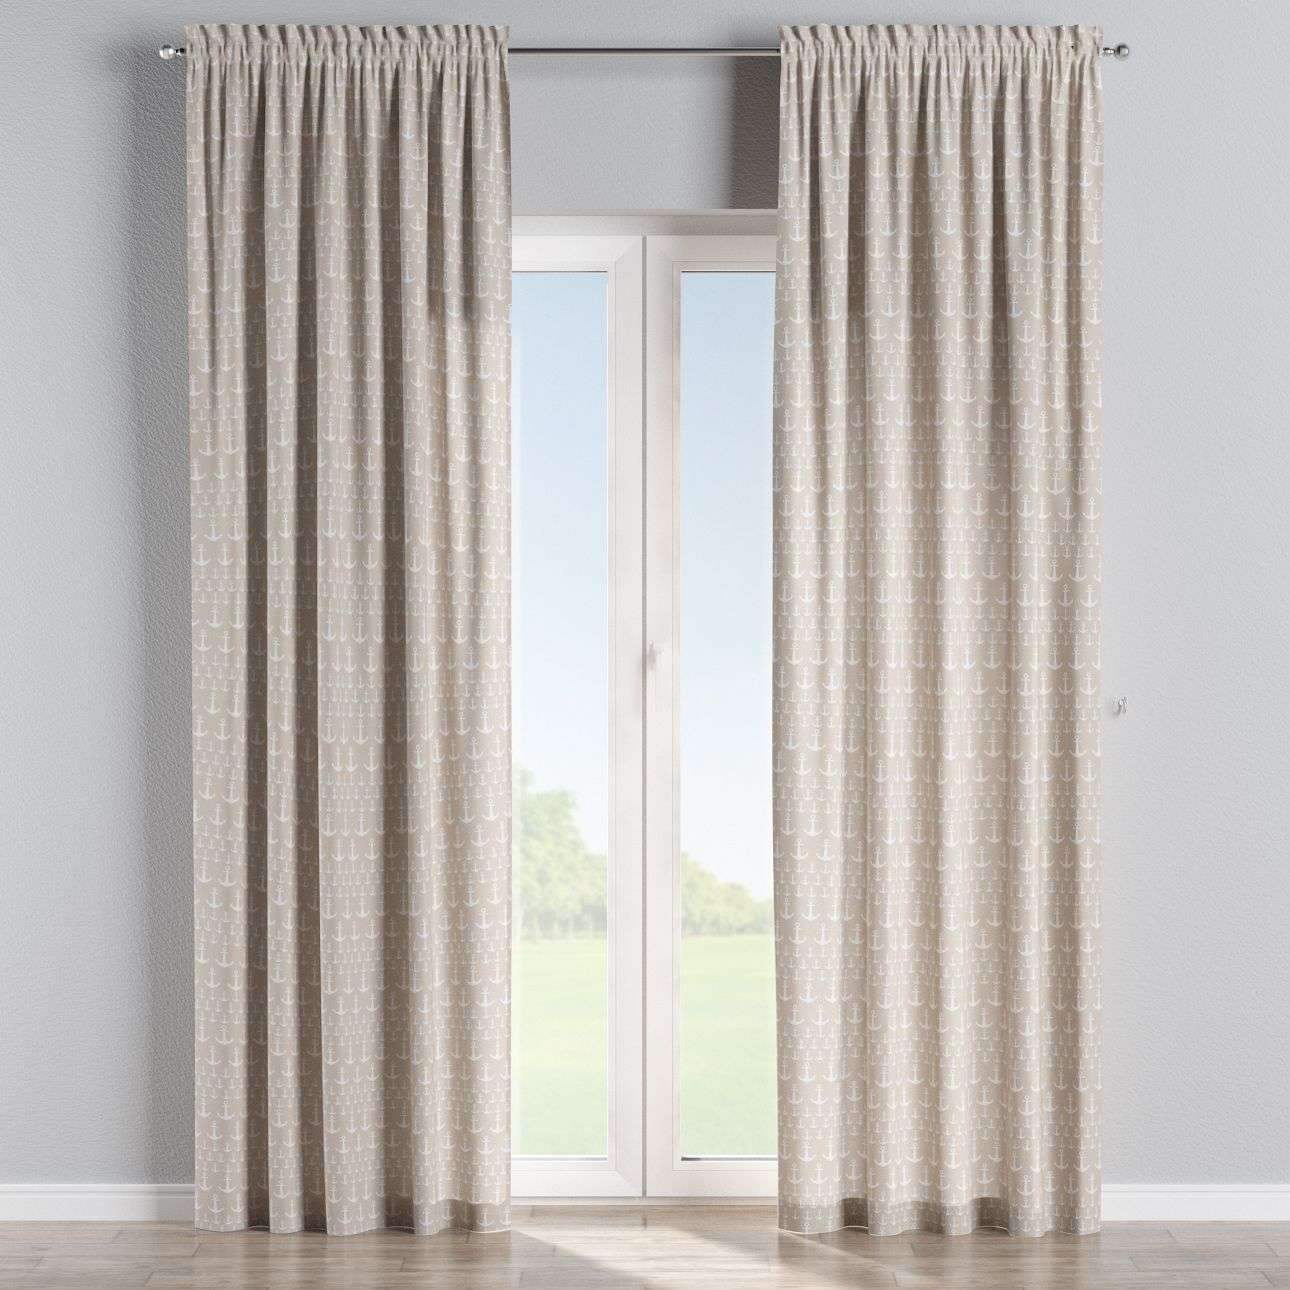 Slot and frill curtains 130 × 260 cm (51 × 102 inch) in collection Marina, fabric: 140-63